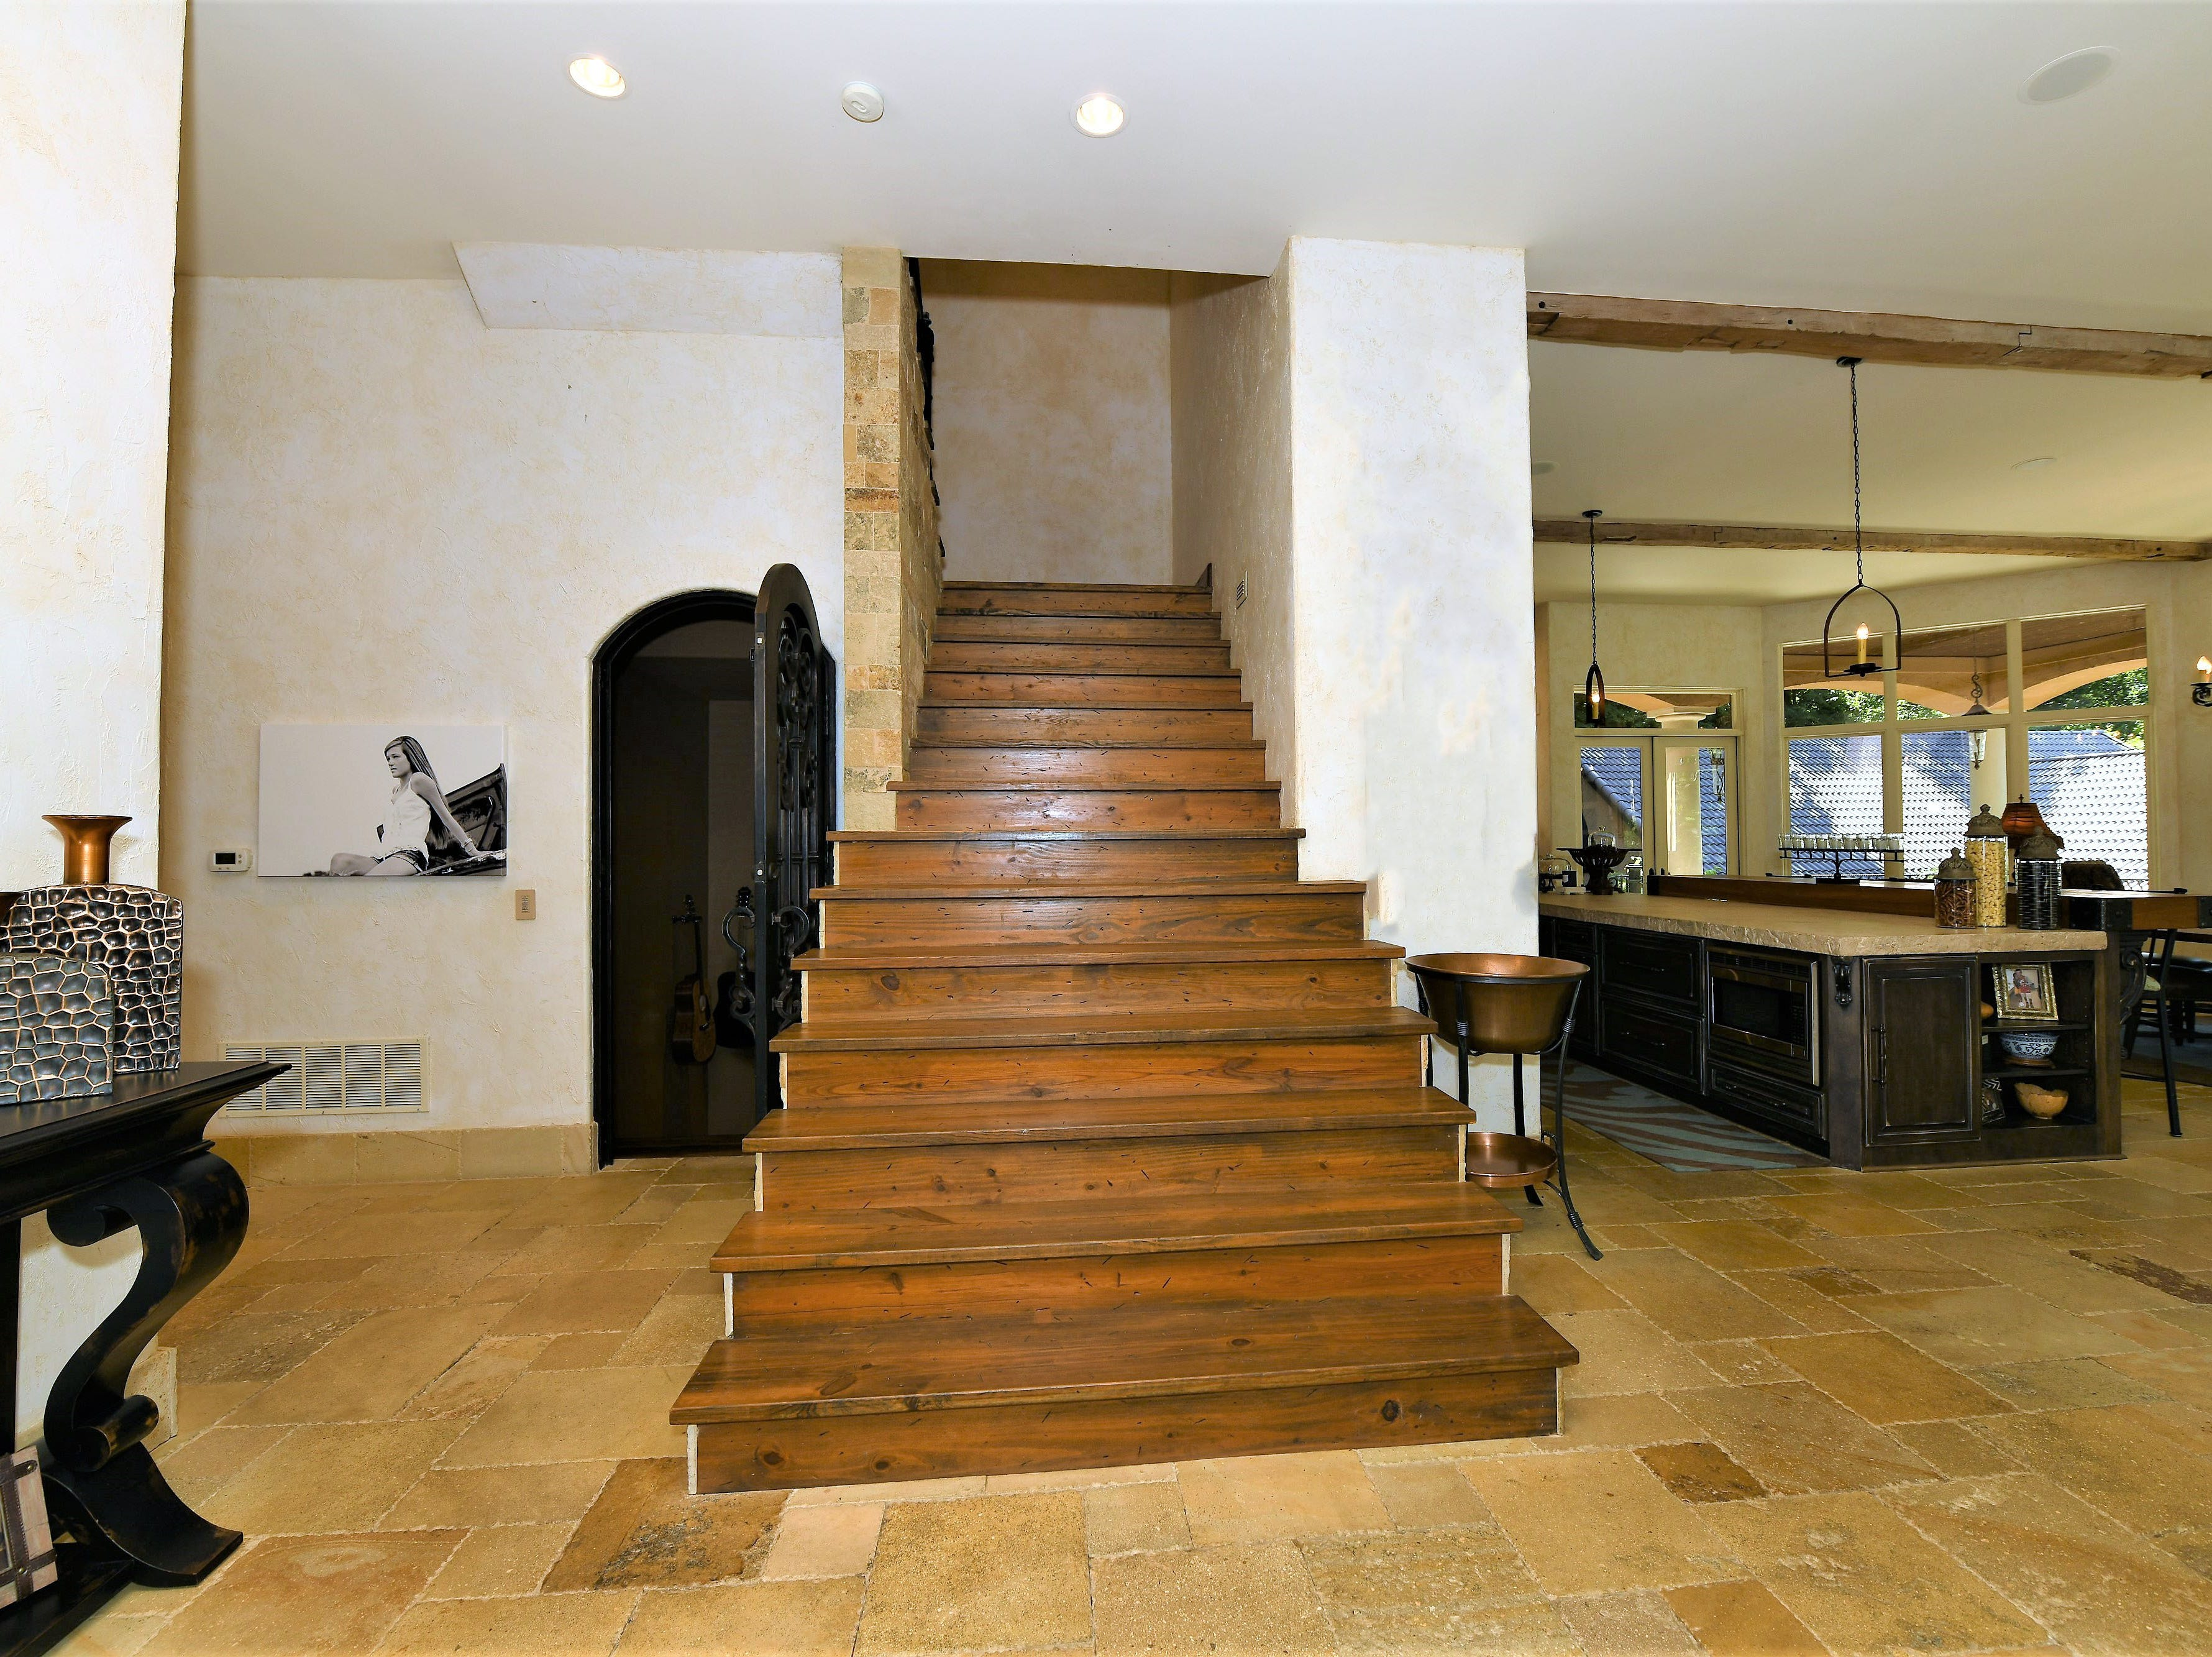 Behind the kitchen, a large wooden staircase leads to two apartment-like spaces on the second floor.